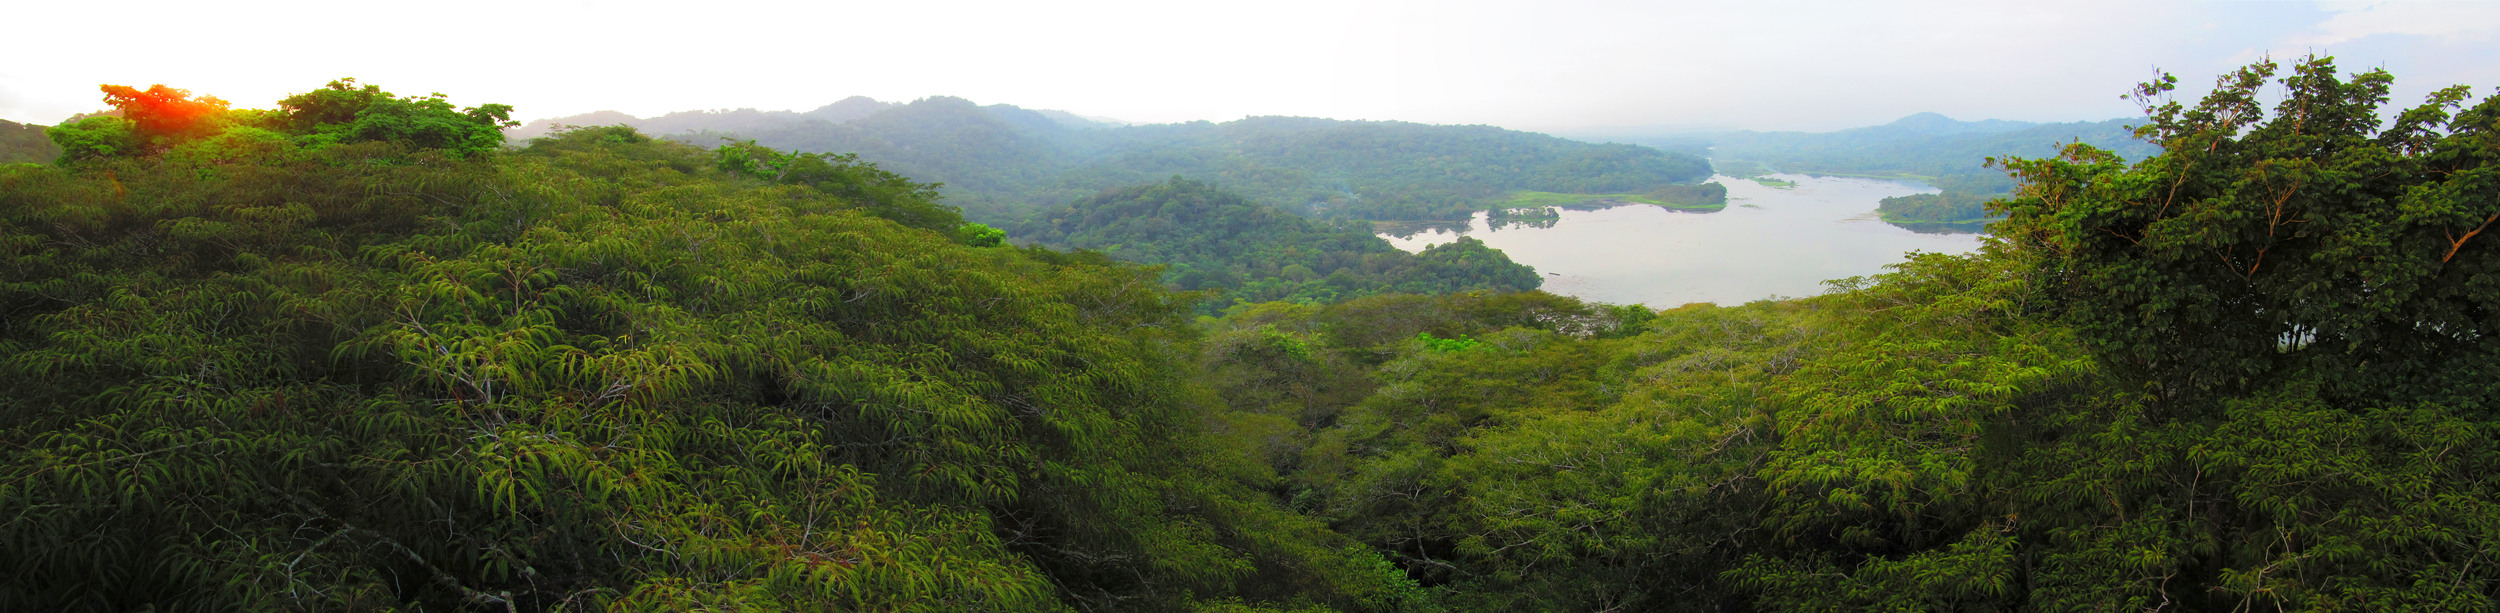 Soberania National Park and the Chagres River